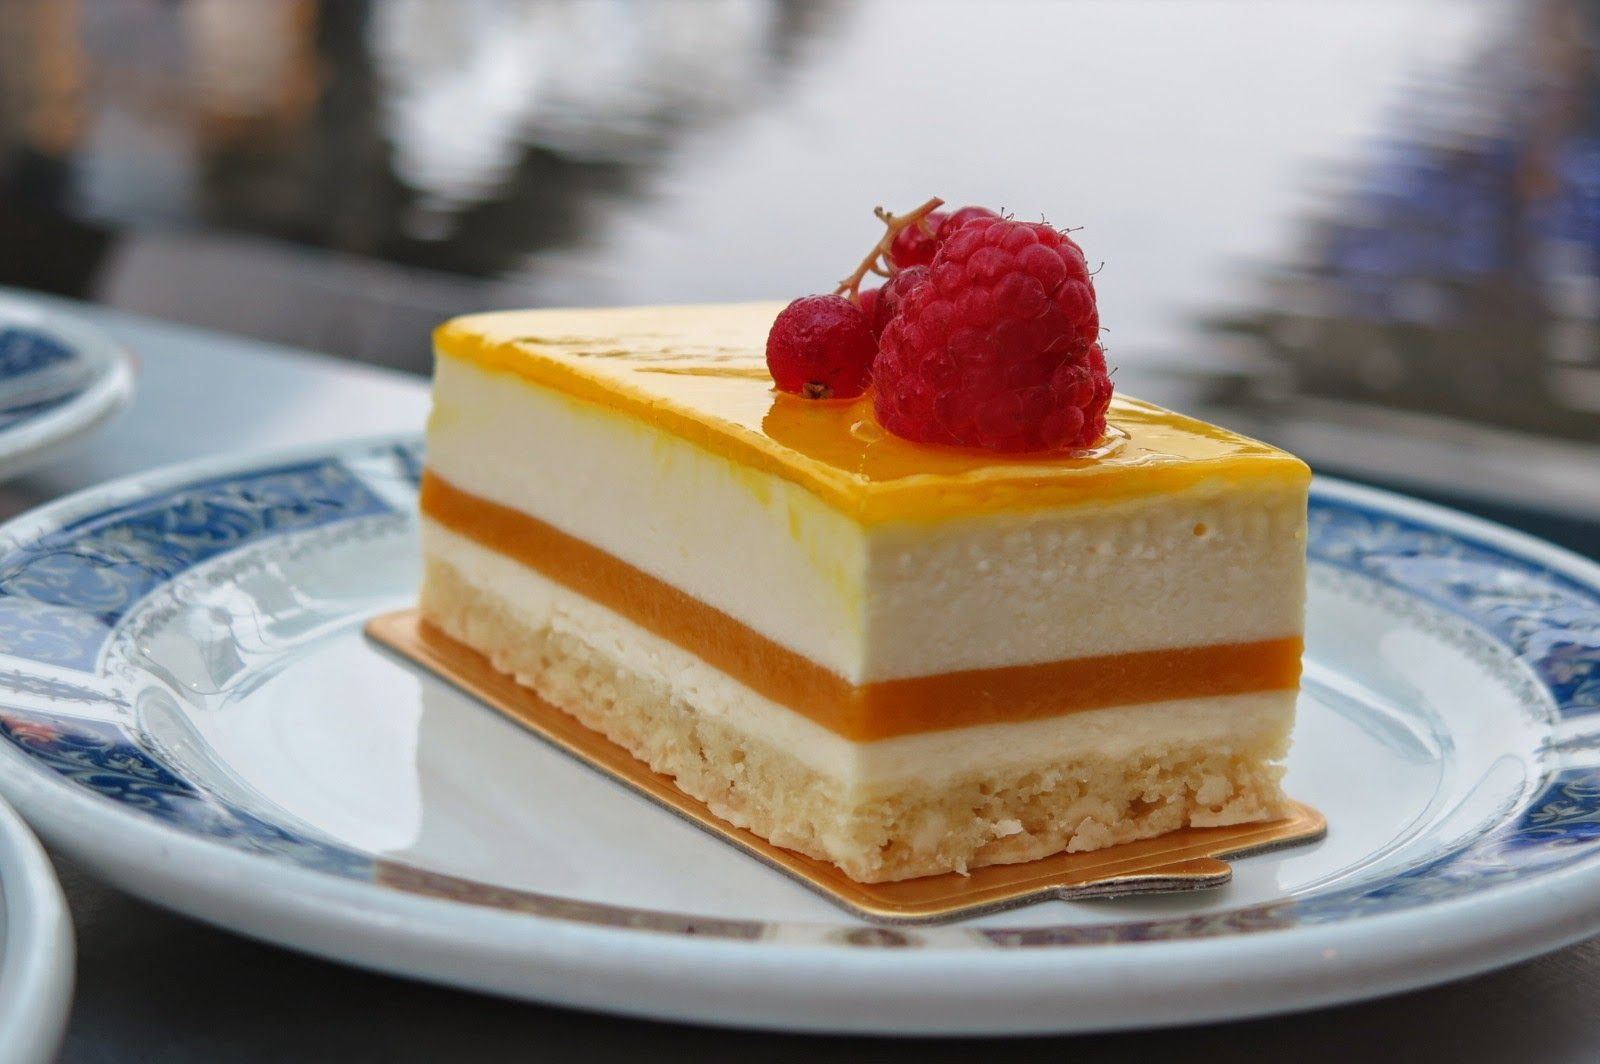 Tiong Bahru Bakery Reimagined Classic French Desserts With